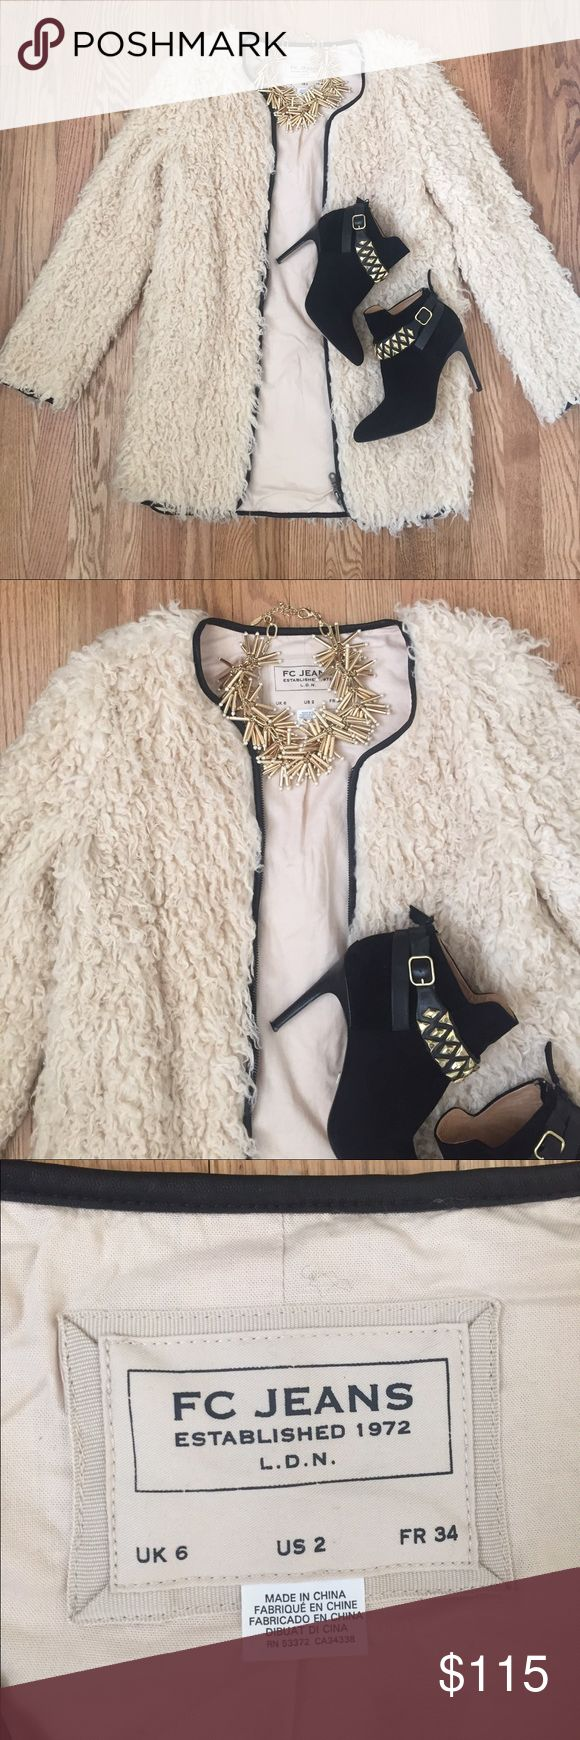 French Connection faux-fur fashion jacket French Connection faux-fur fashion jacket.  Cream color with black trim around the zipper.  Size 2 but runs small.  Fits more like a 0.   Excellent condition.  Only worn twice. French Connection Jackets & Coats